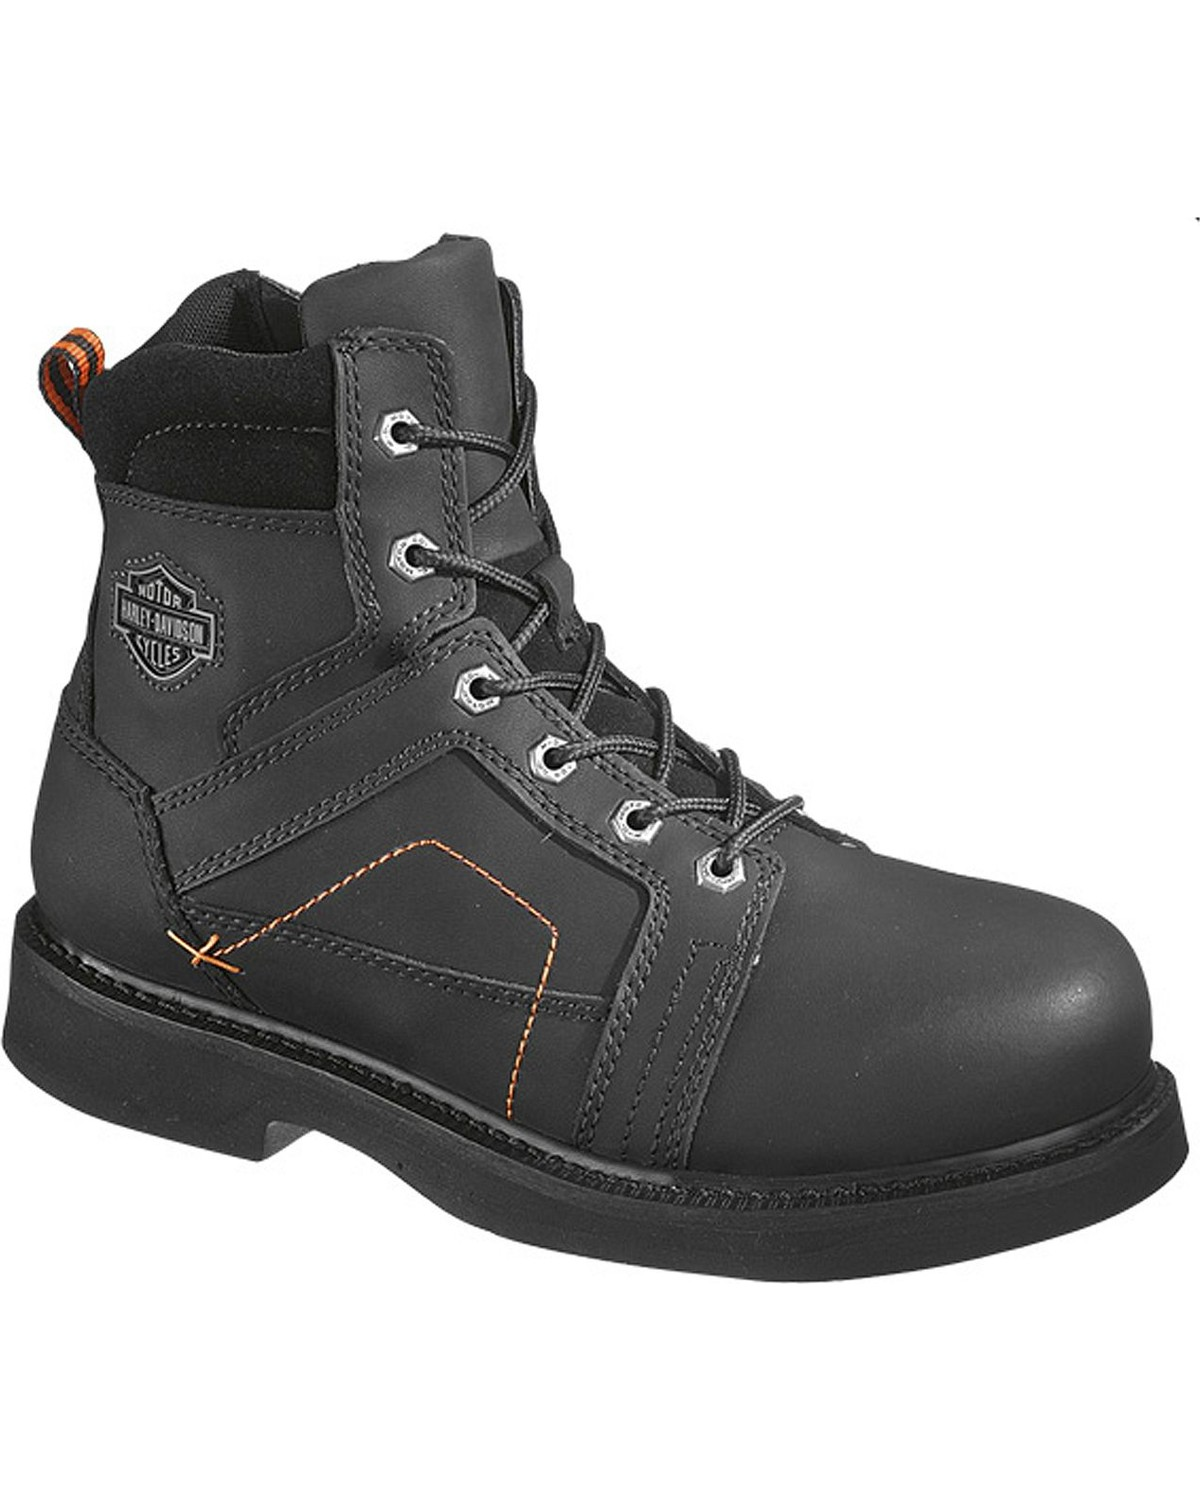 50208c8d658b27 Harley-Davidson Men s Pete Steel Toe Lace Up Motorcycle Boots